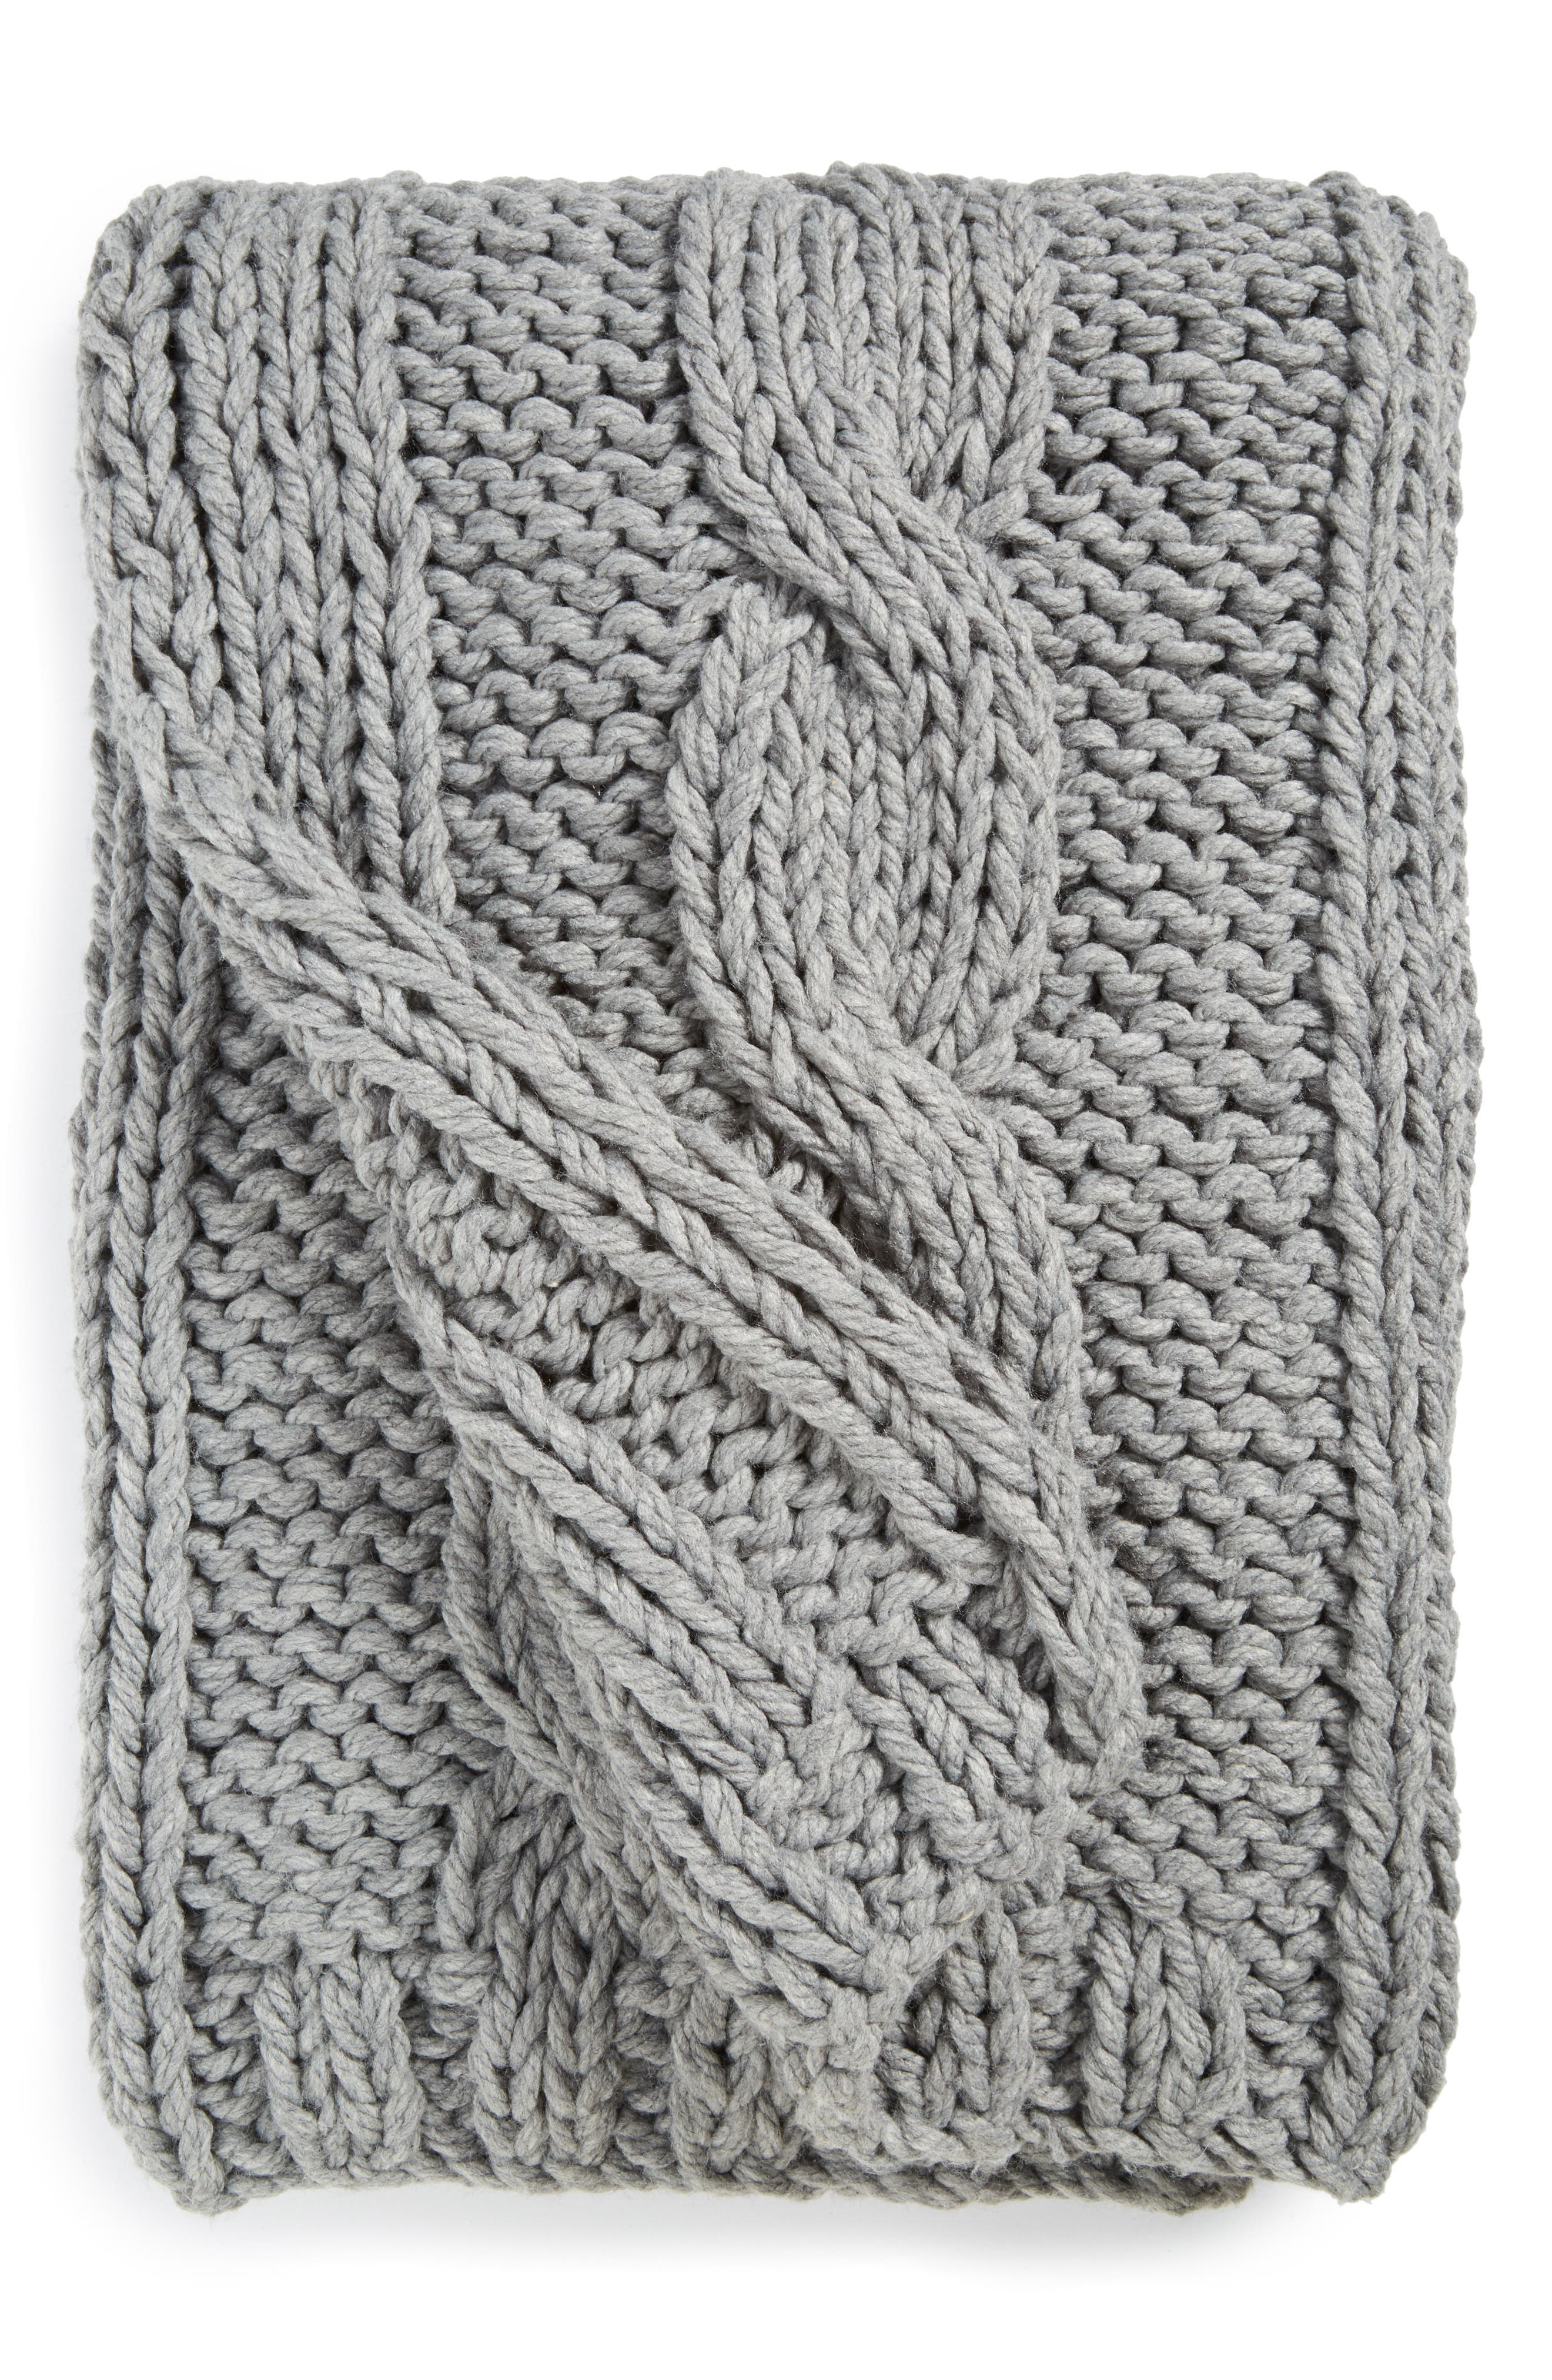 Grand Cable Throw,                             Main thumbnail 1, color,                             020